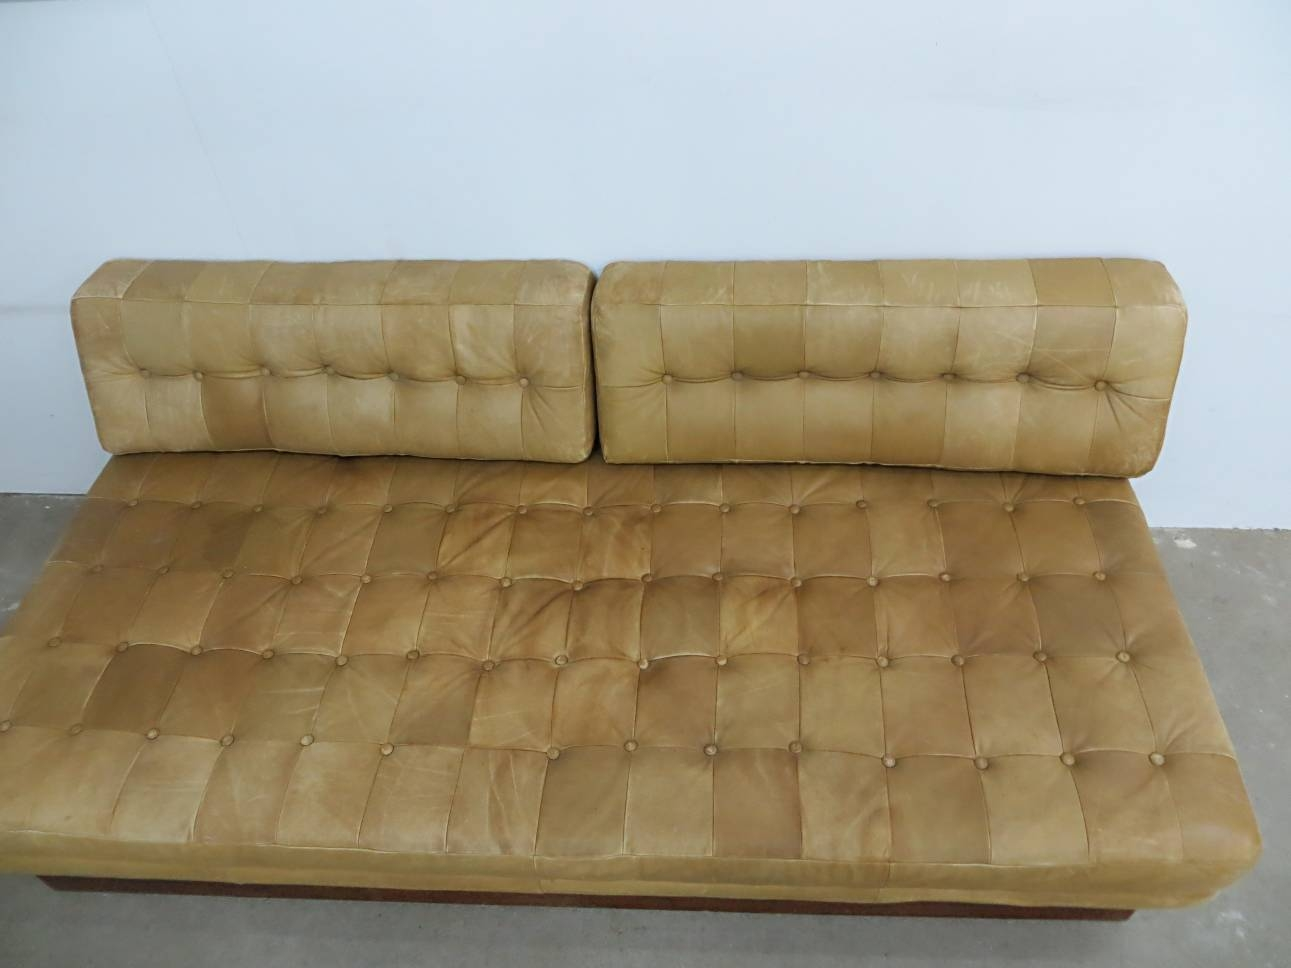 Vintage Leather Sofa Bed For Sale At Pamono pertaining to Vintage Leather Sofa Beds (Image 23 of 30)